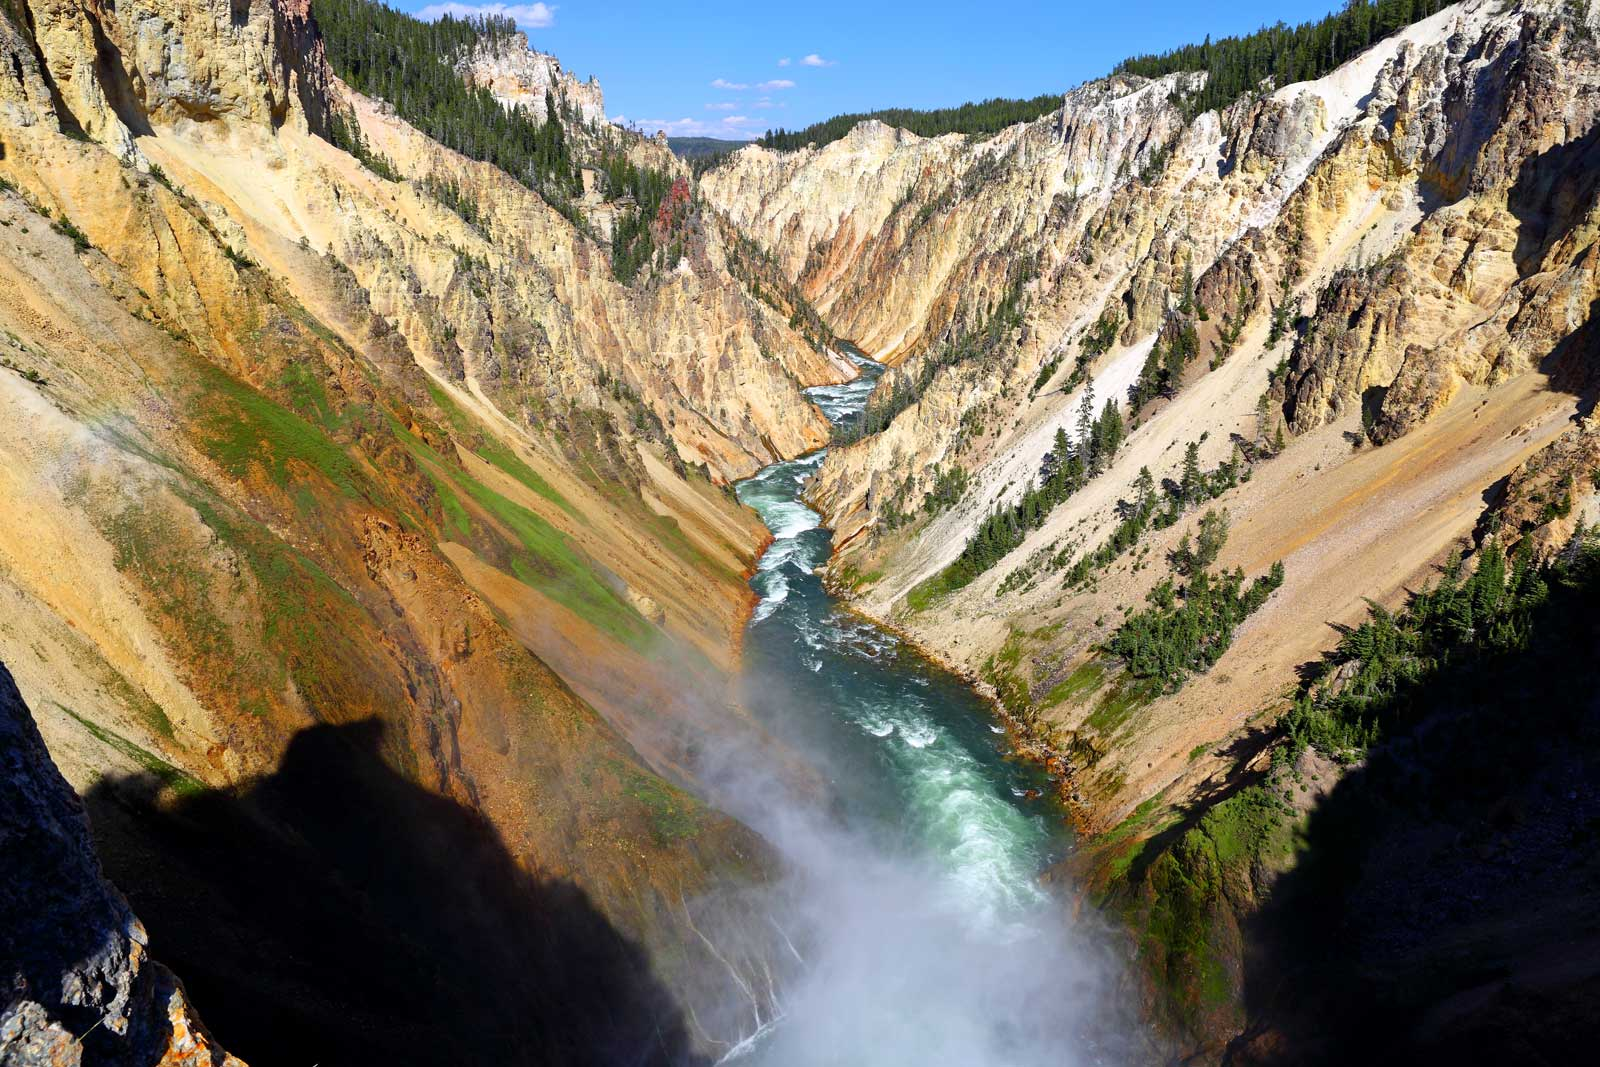 Brink of Lower Falls hiking Trail in Yellowstone